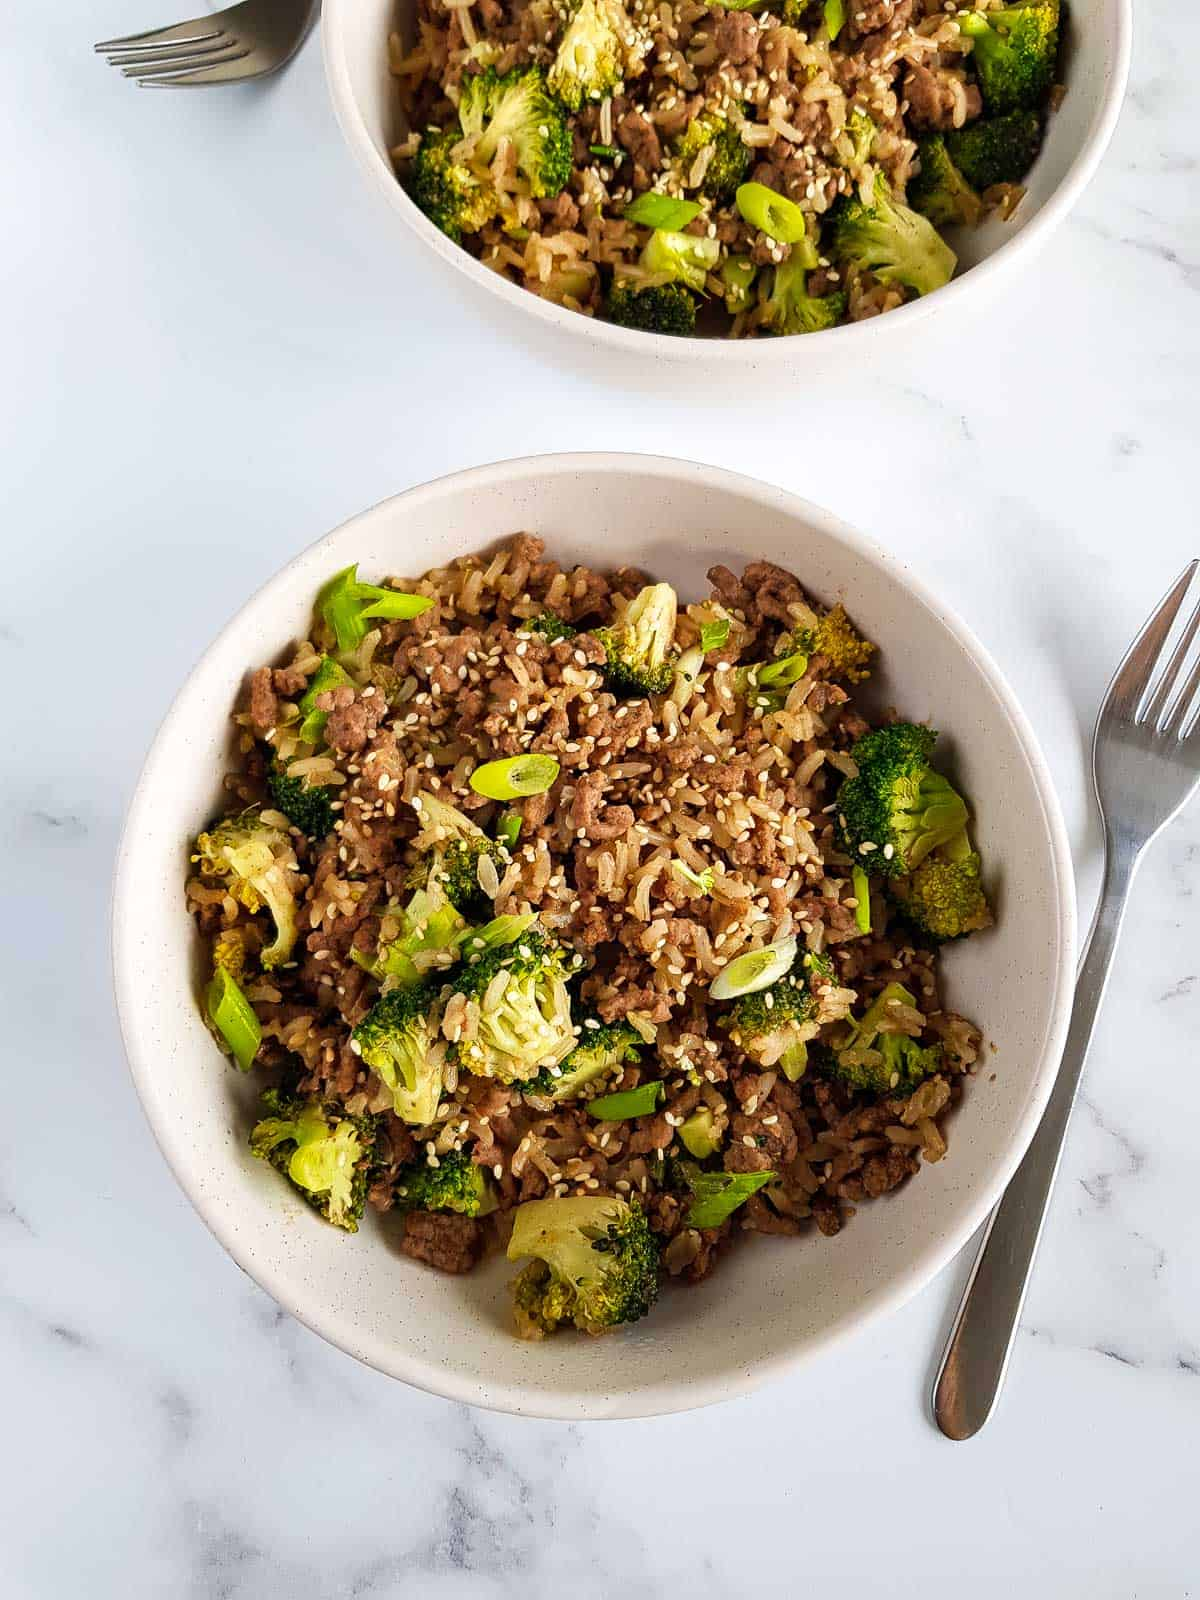 Ground beef and broccoli dish with rice.